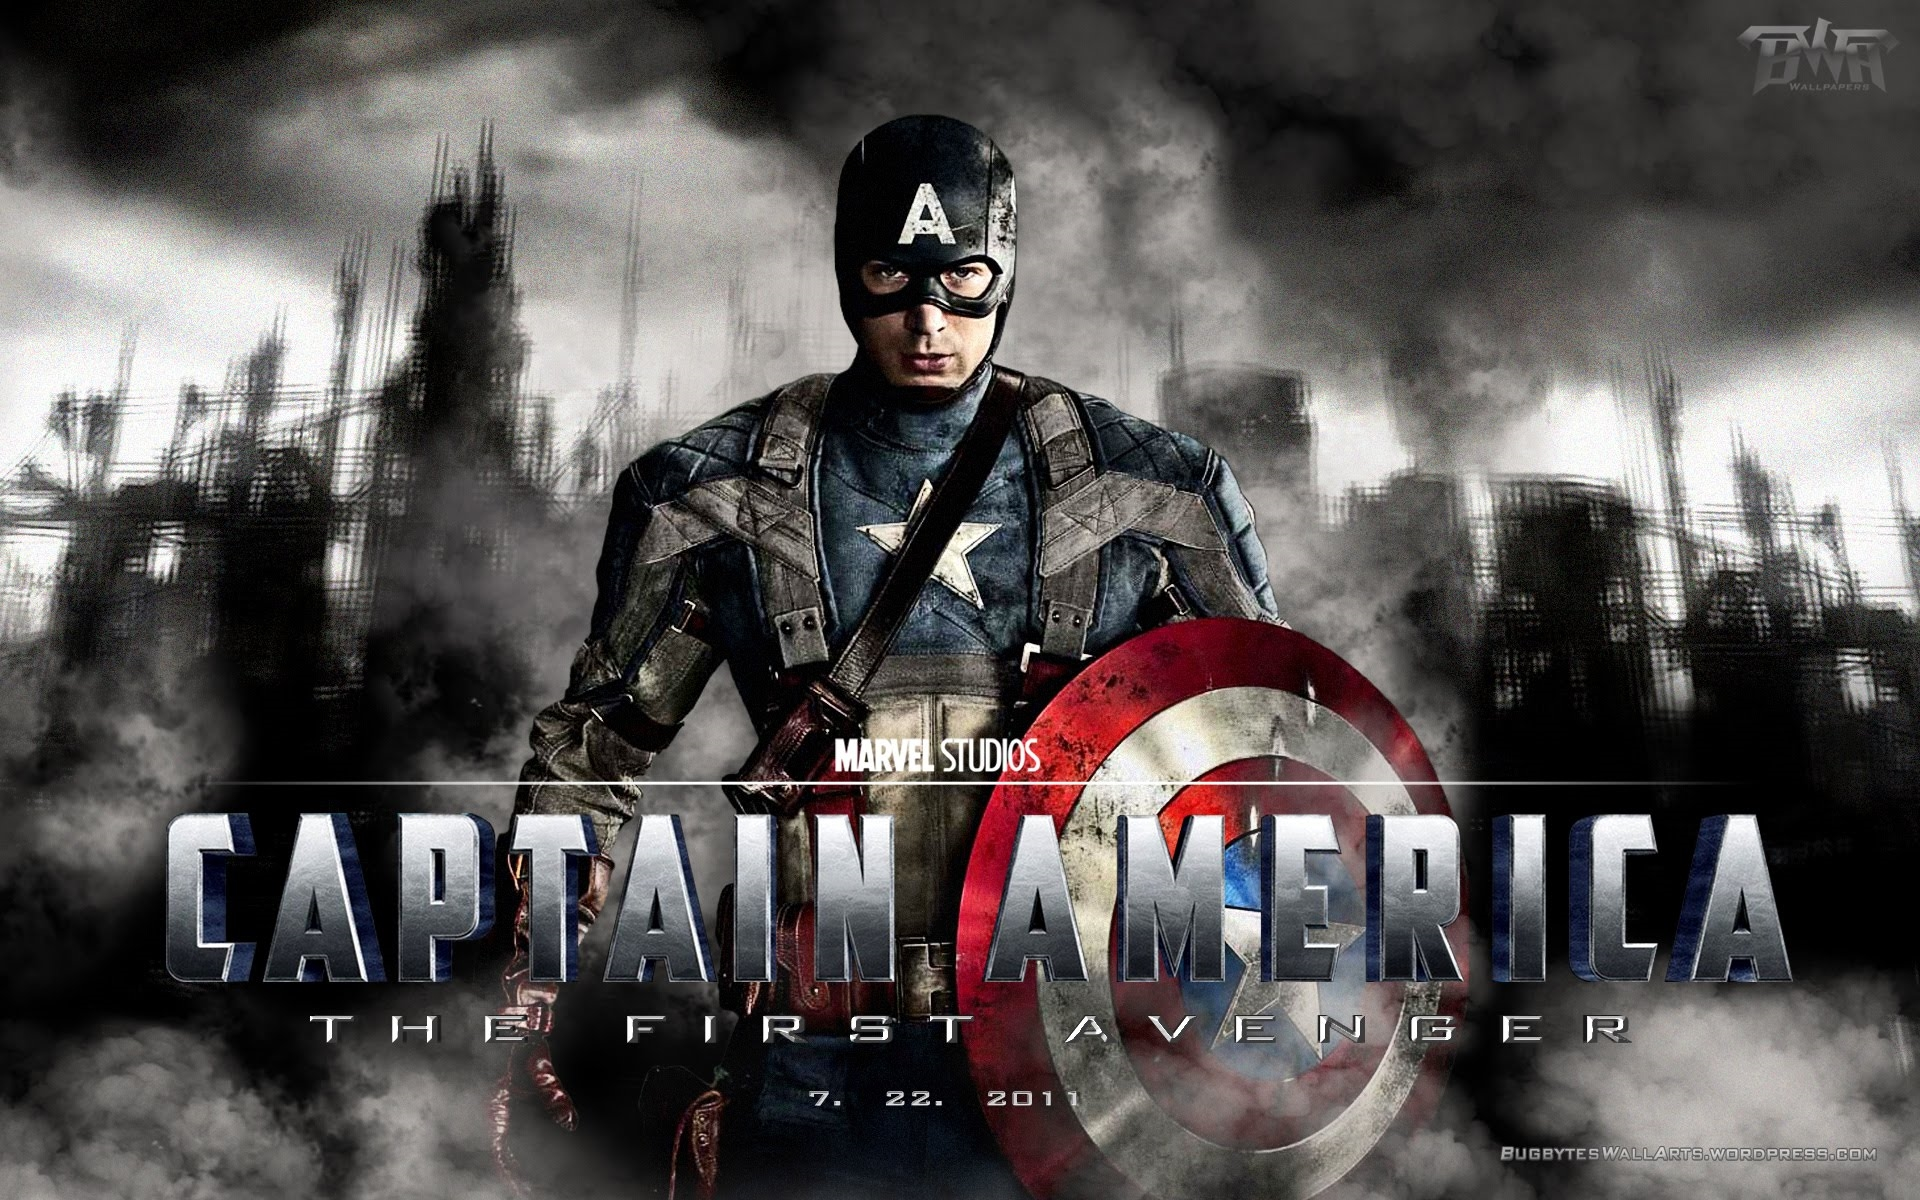 Hd wallpaper of captain america - Cast Of Captain America